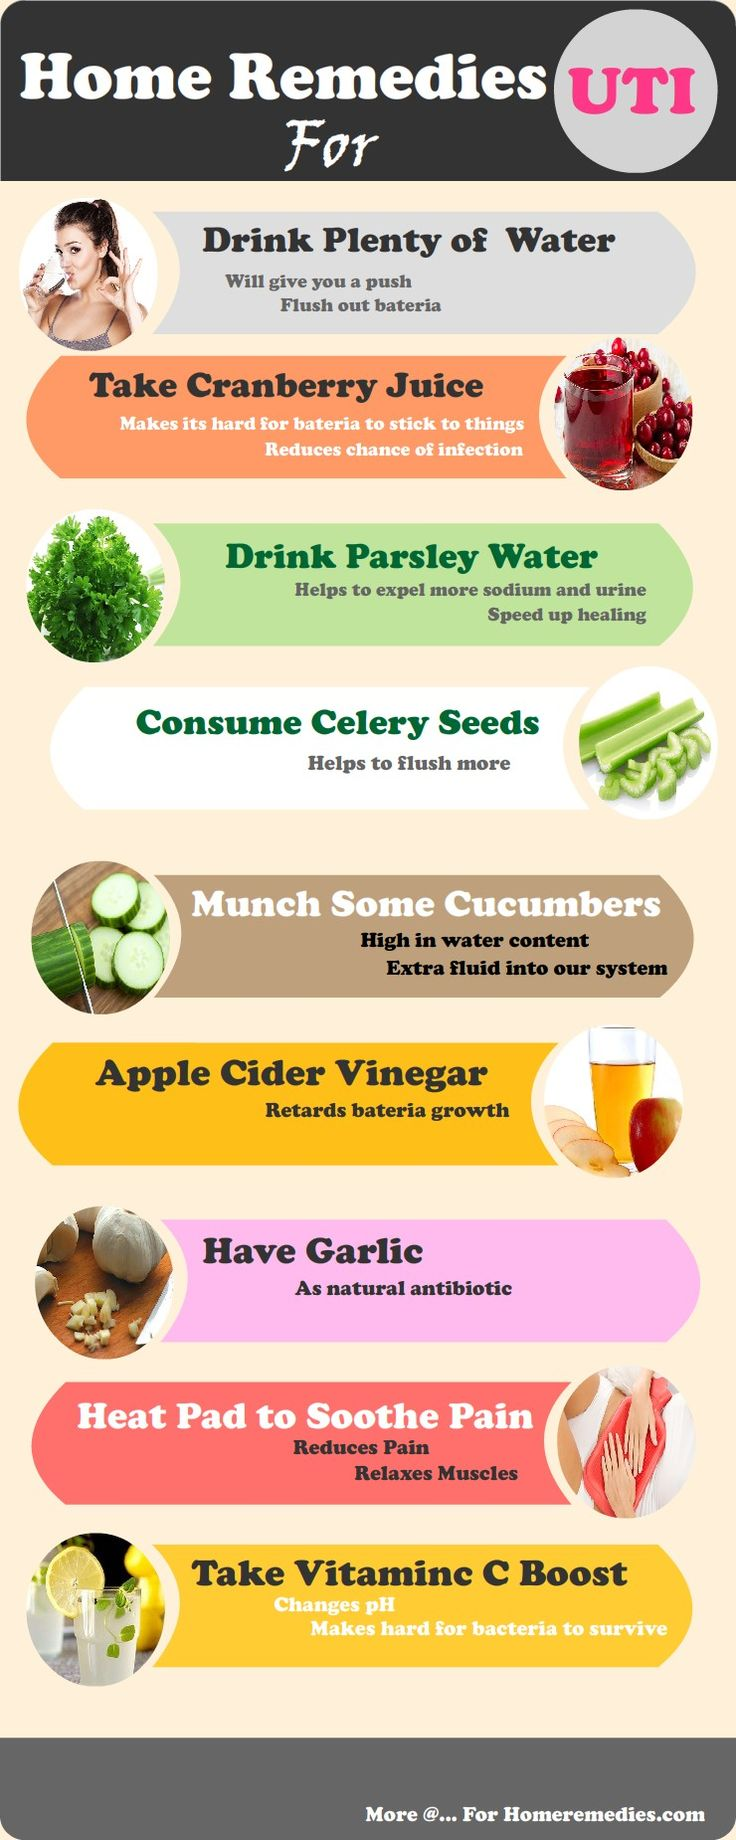 Best 25 uti remedies ideas on pinterest urinary tract infection how to get rid of uti natural home remedies for uti drink water ccuart Images